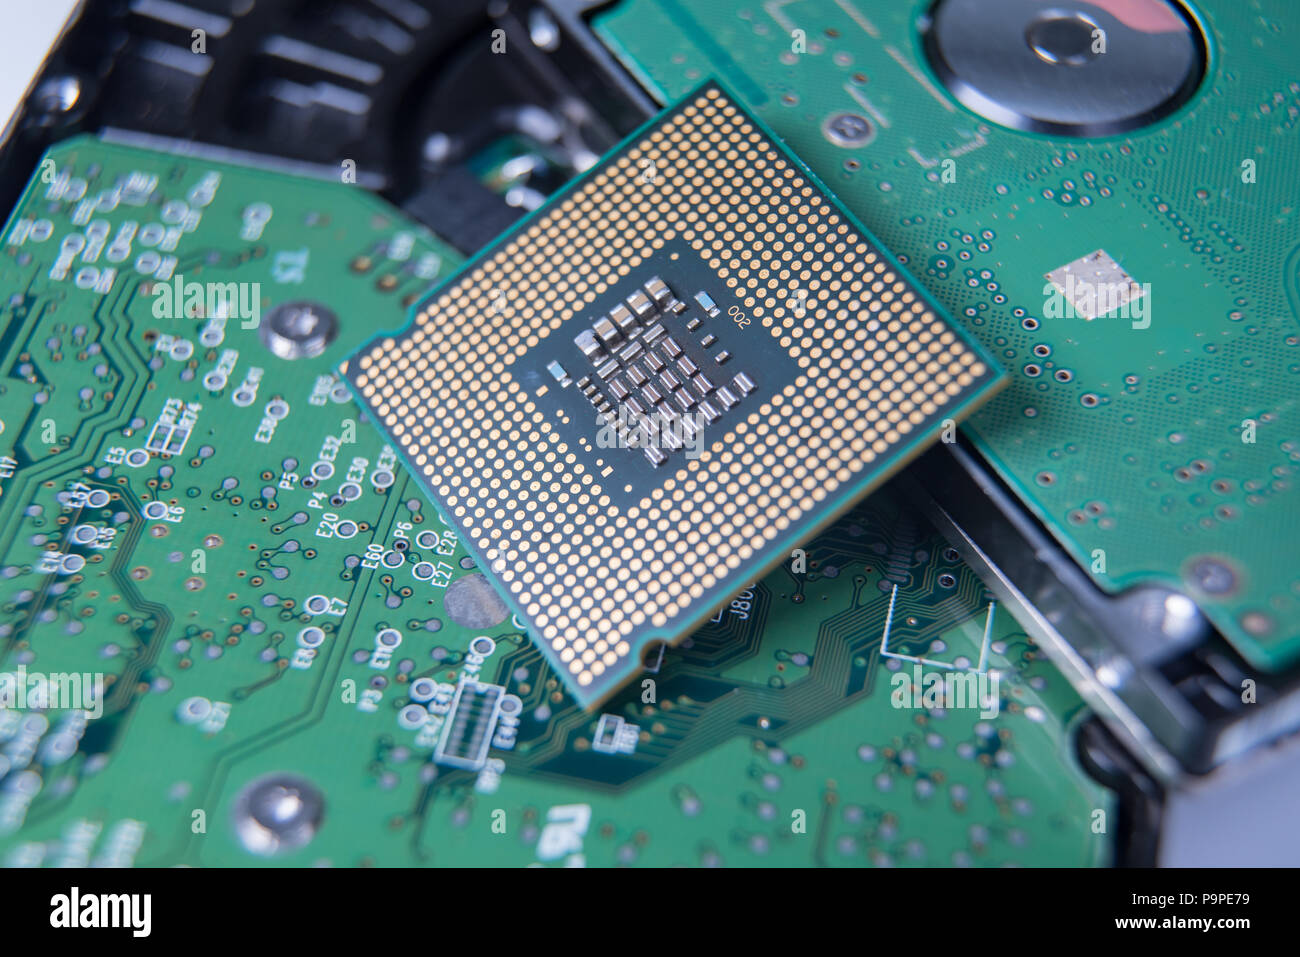 electronic cpu stock photos \u0026 electronic cpu stock images alamyWhite Gloved Hands And Brush Cleaning Computer Circuit Board Cpu Stock #6